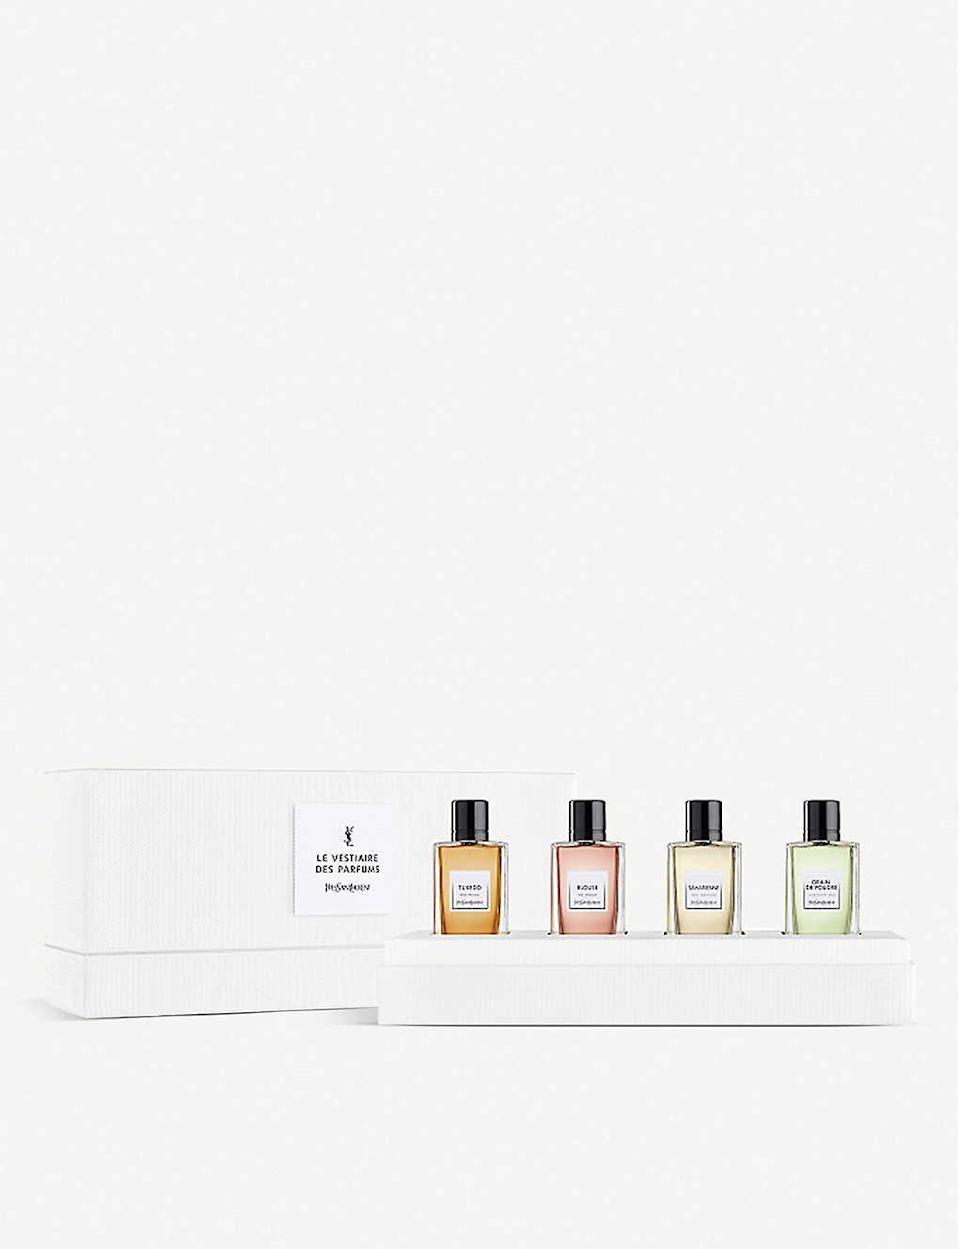 """<p><strong>Yves Saint Laurent</strong></p><p>selfridges.com.us</p><p><strong>$110.00</strong></p><p><a href=""""https://go.redirectingat.com?id=74968X1596630&url=https%3A%2F%2Fwww.selfridges.com%2FUS%2Fen%2Fcat%2Fyves-saint-laurent-le-vestiaire-des-parfums-discovery-set_R00132815&sref=https%3A%2F%2Fwww.seventeen.com%2Flife%2Ffriends-family%2Fg1088%2Fholiday-gifts-for-dad%2F"""" rel=""""nofollow noopener"""" target=""""_blank"""" data-ylk=""""slk:Shop Now"""" class=""""link rapid-noclick-resp"""">Shop Now</a></p><p>With four different scents, he won't even notice when you steal a spray for yourself. </p>"""